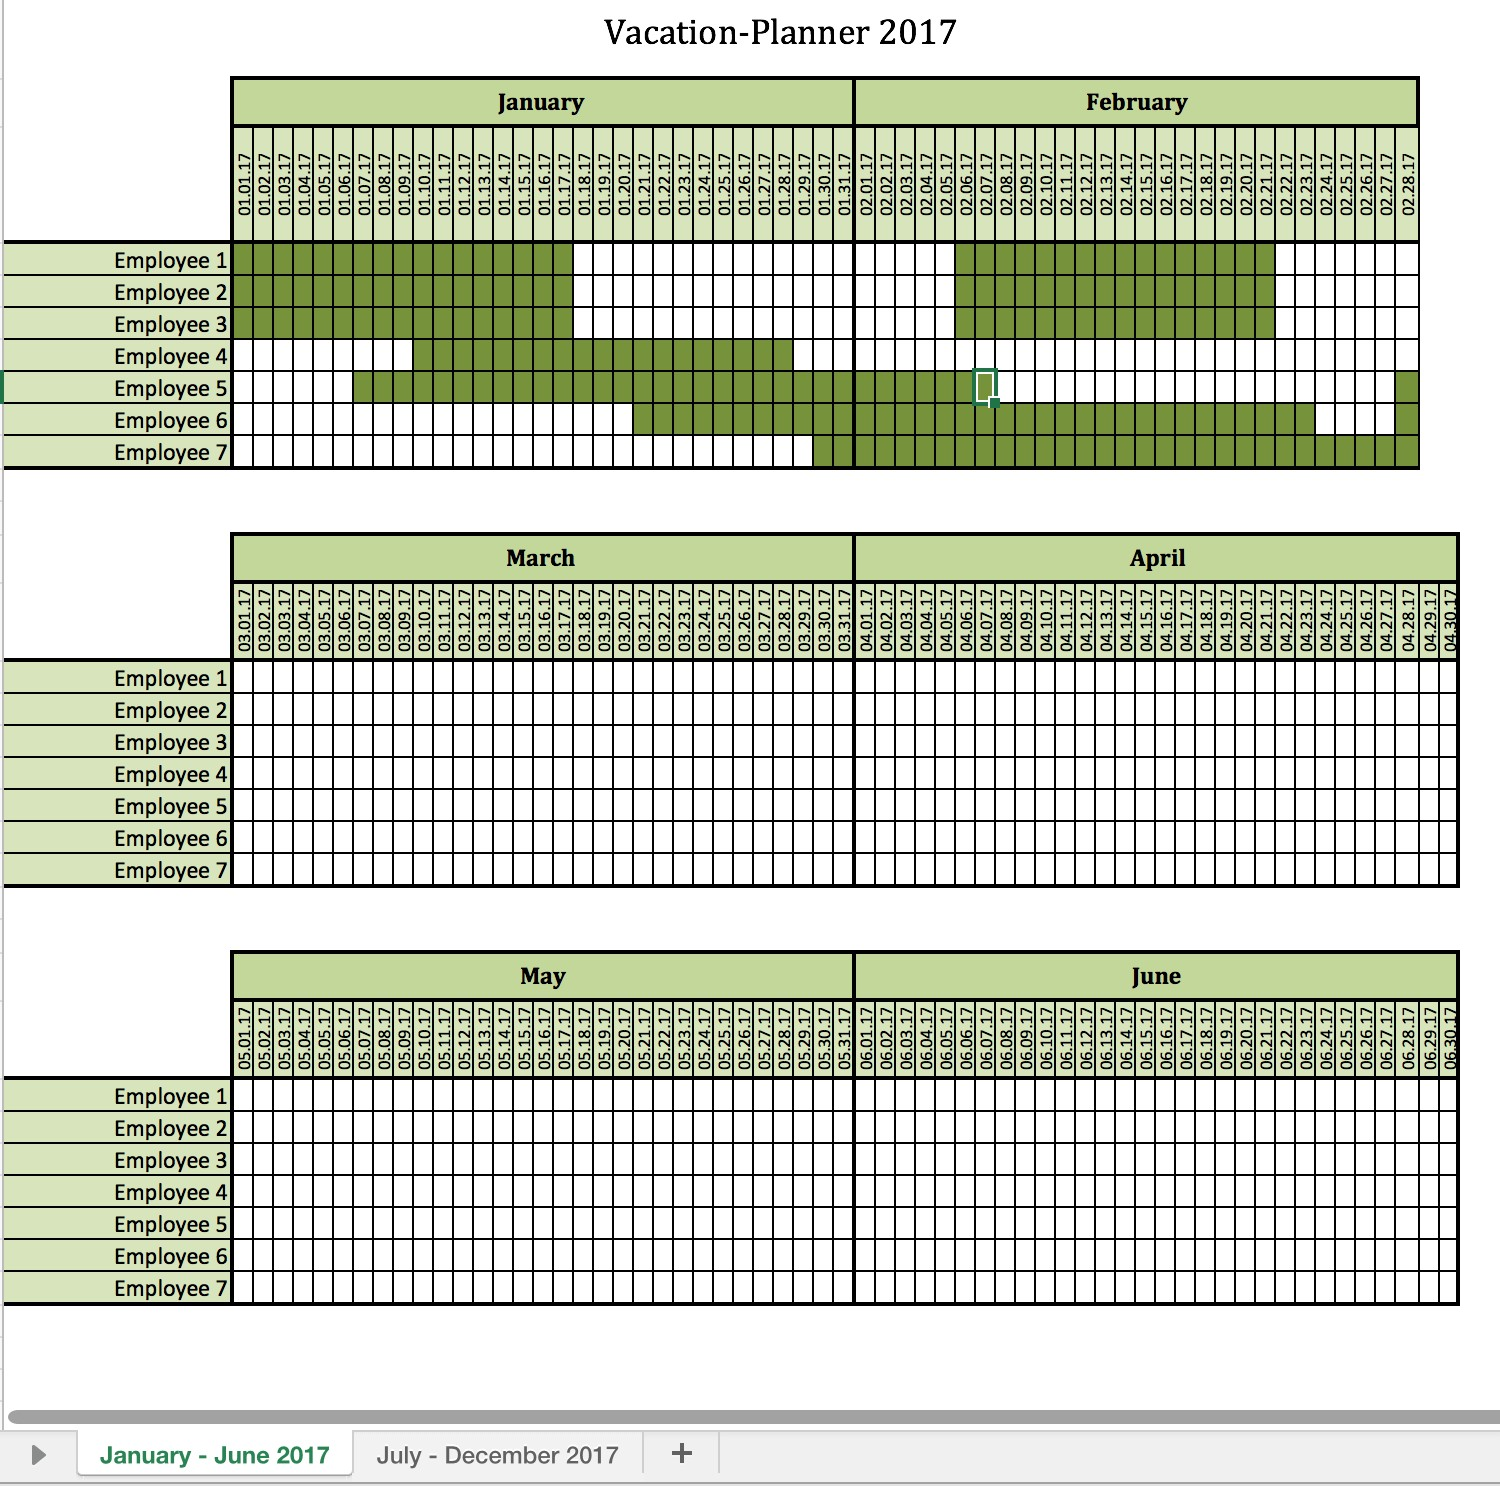 vacation calendar template for employees  Employee Vacation Planner Template Excel – printable ..